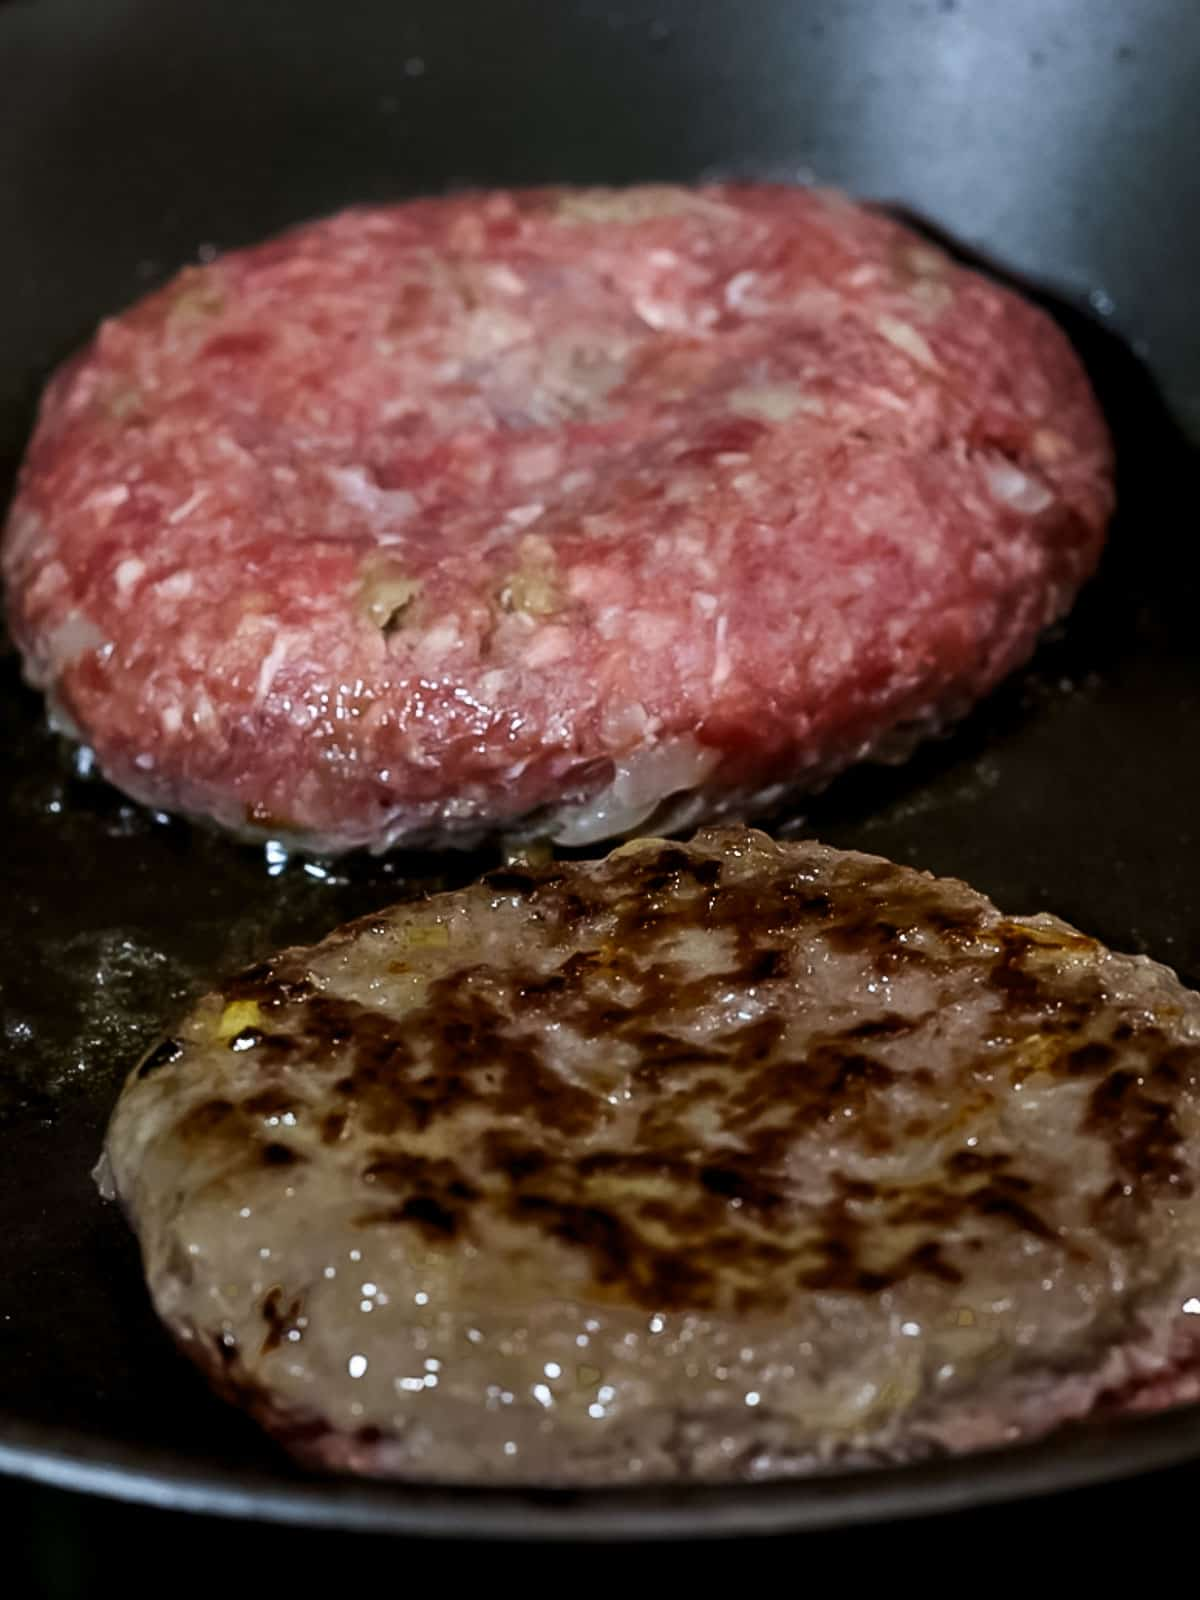 Japanese hamburger steak patties cooking in a pan with golden brown edges.